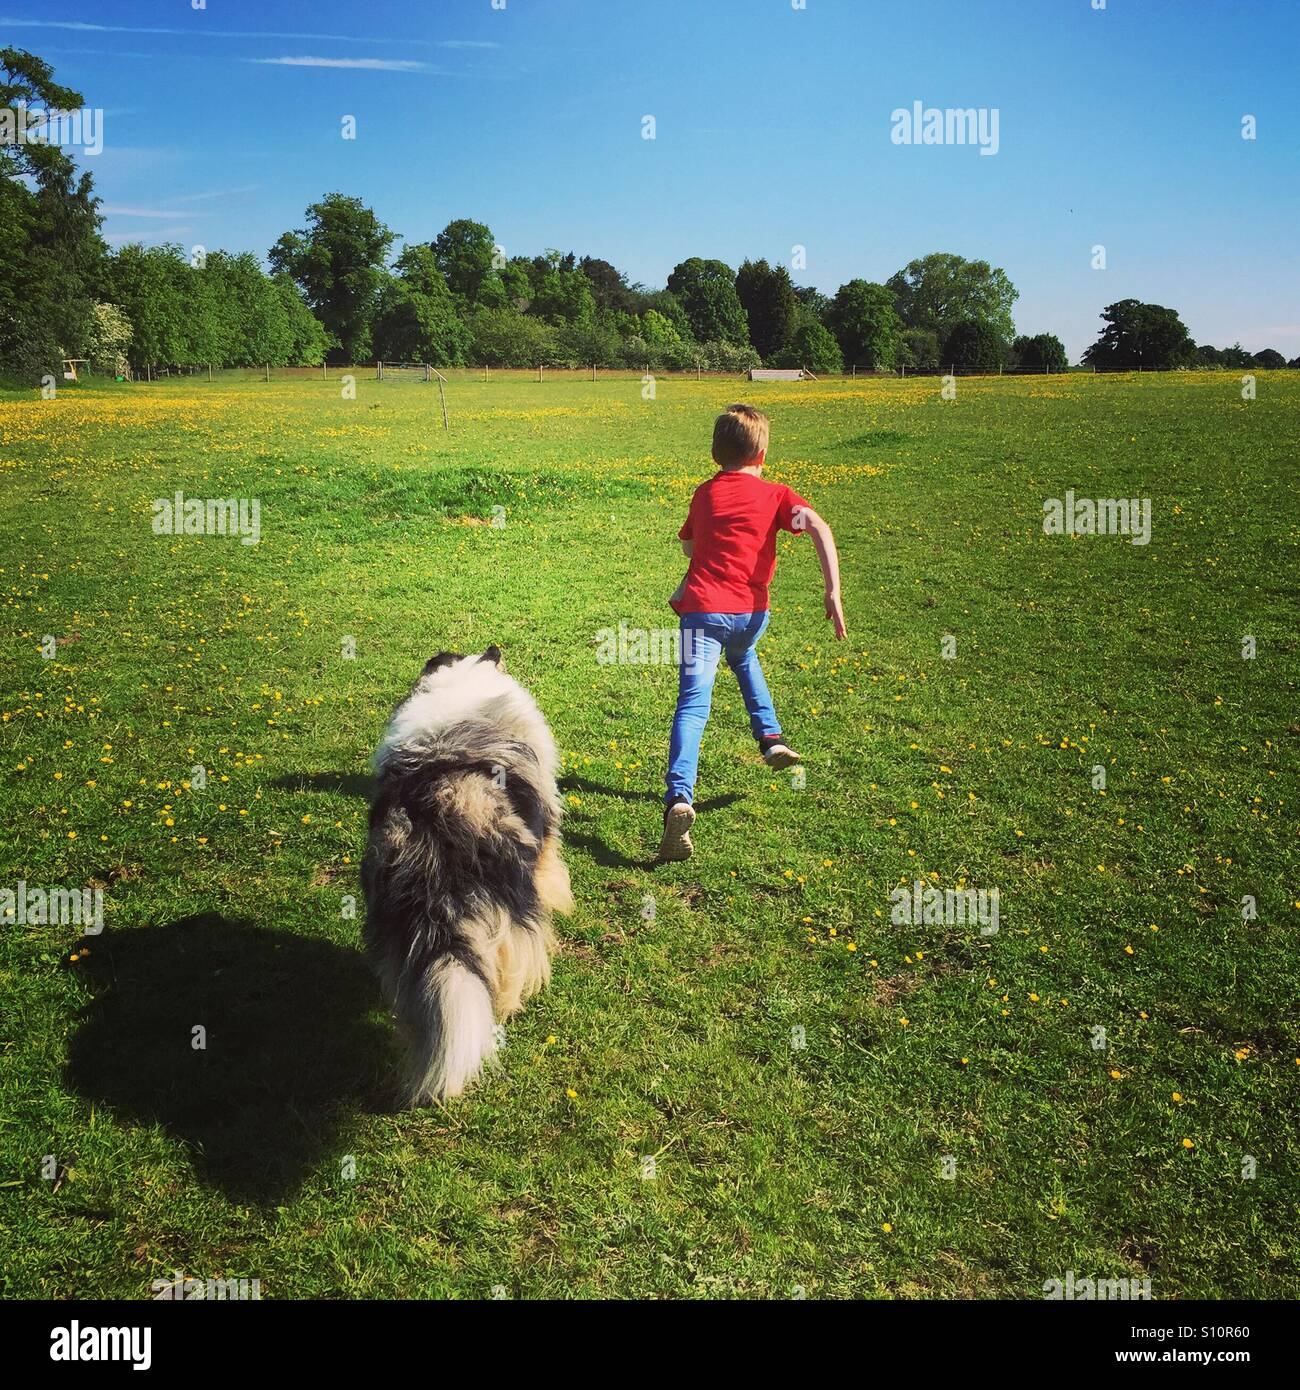 boy-and-dog-running-through-a-buttercup-